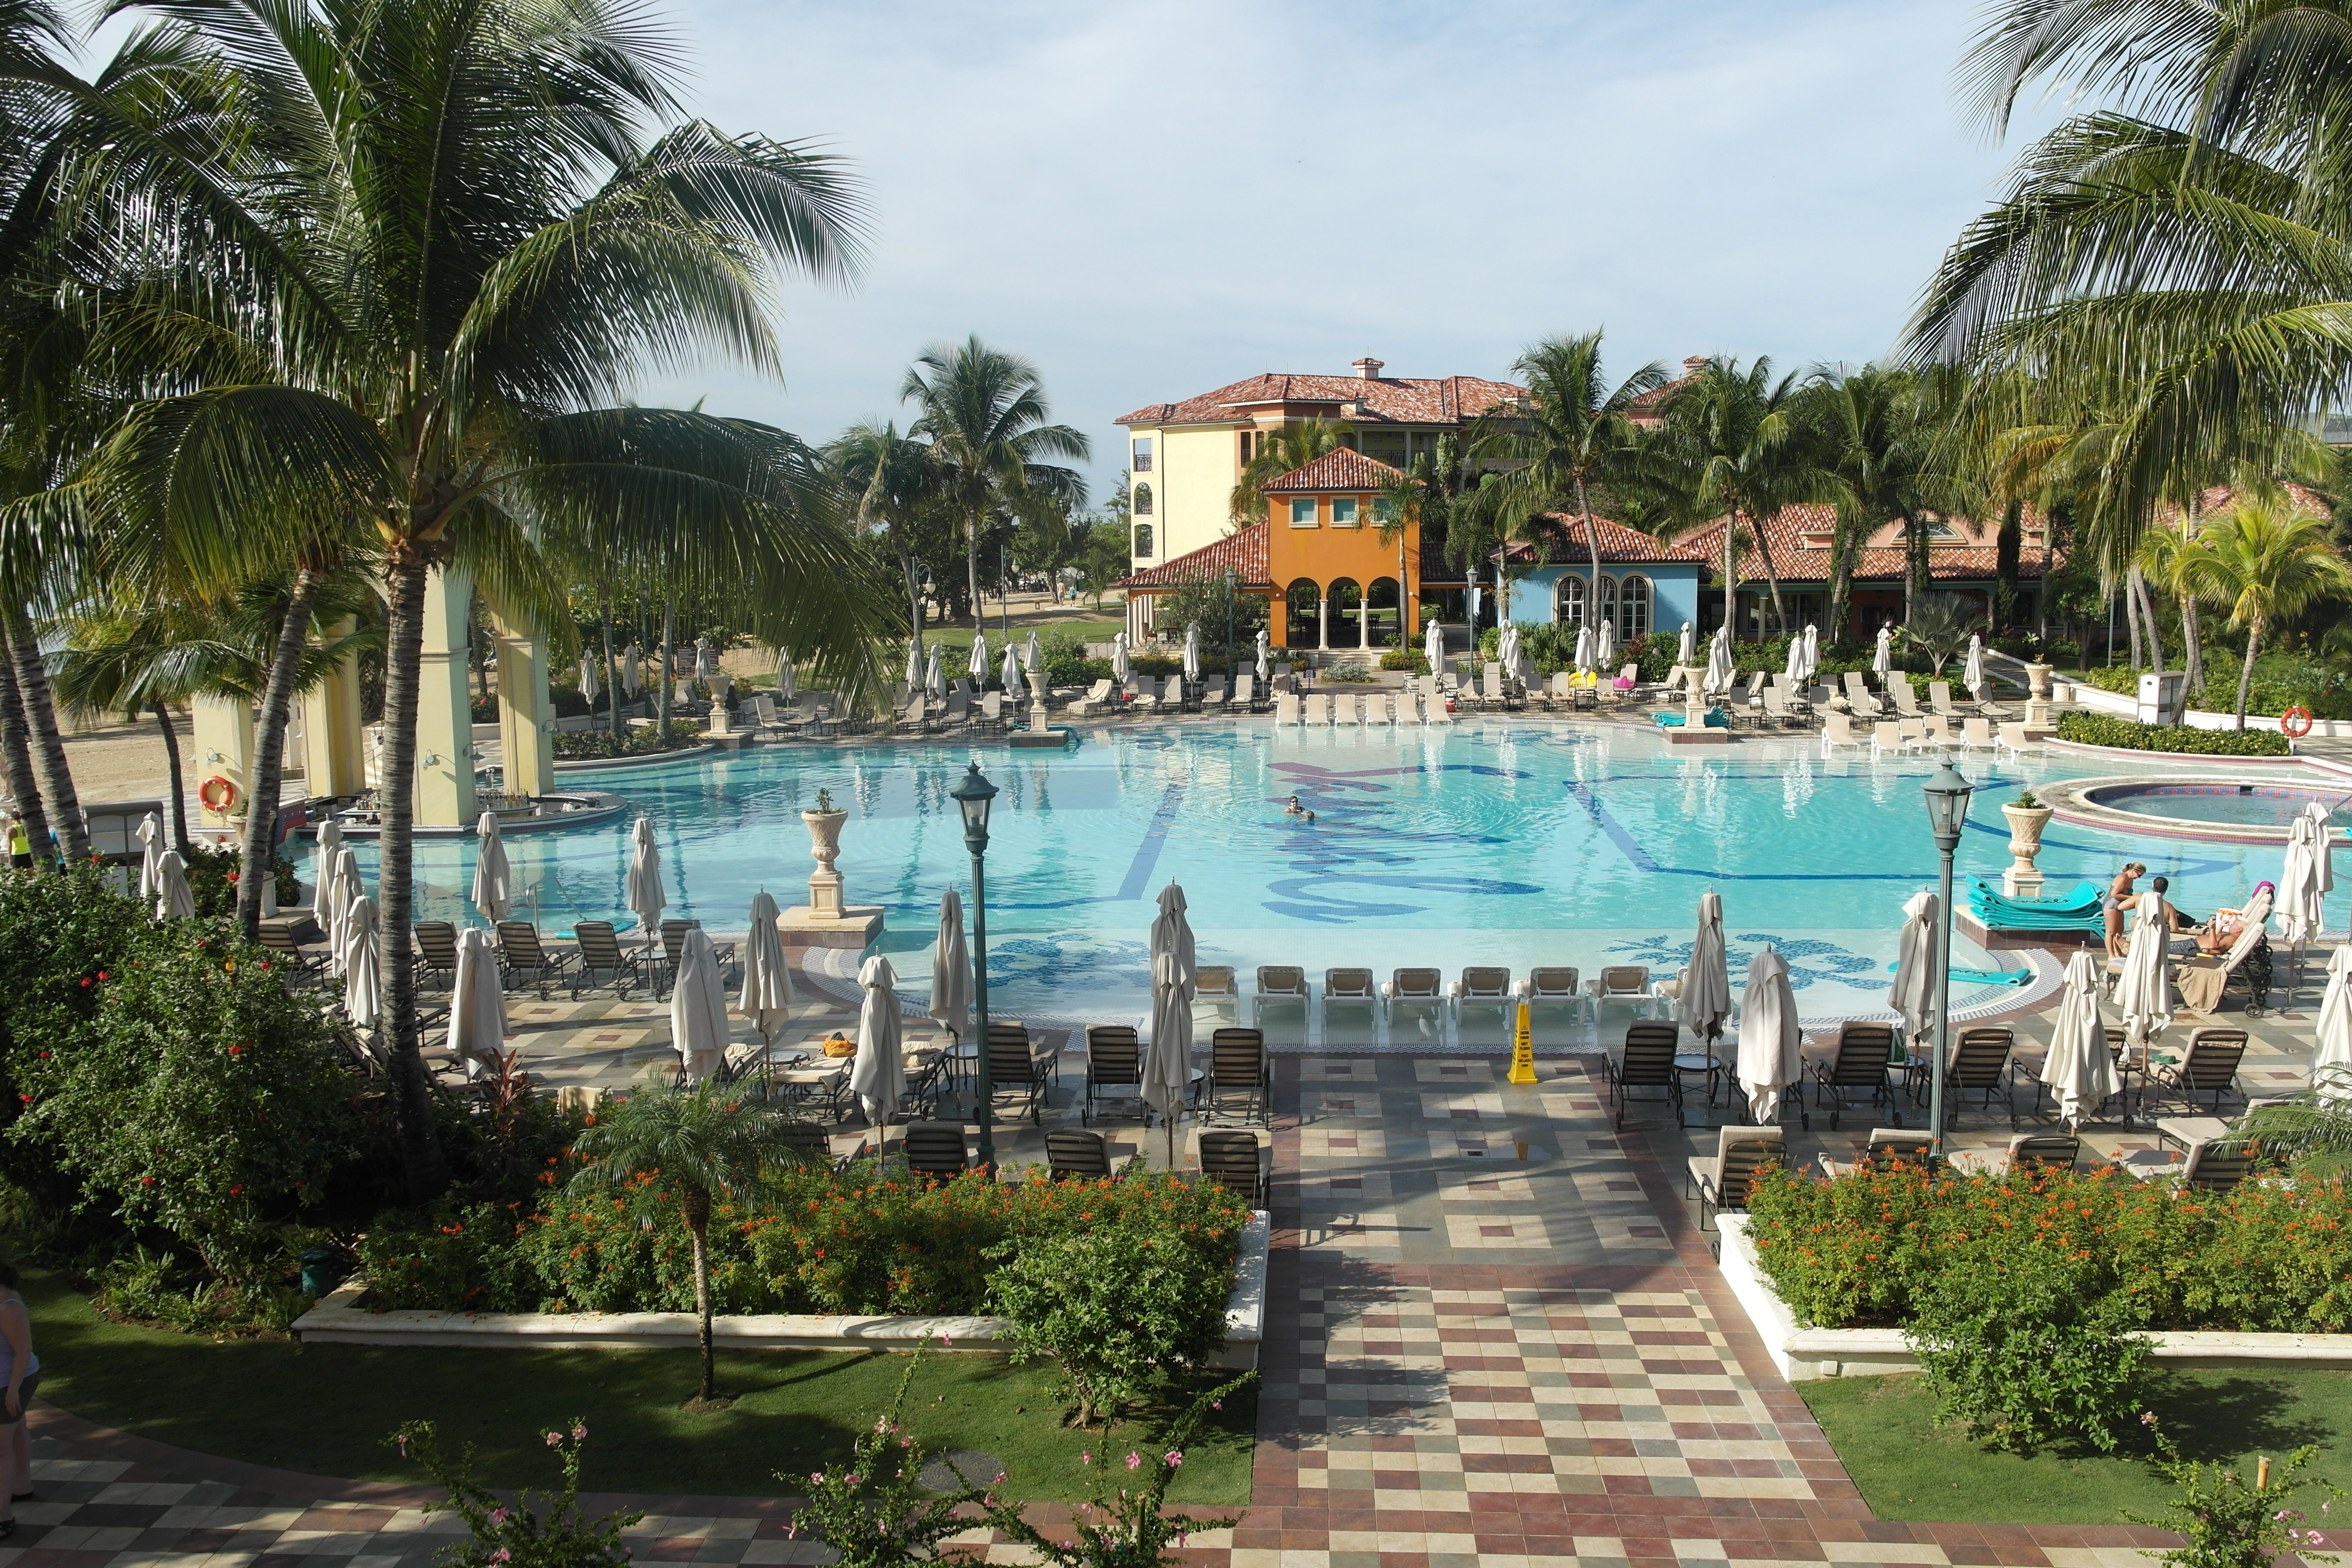 Stay at Sandals Negril allinclusive resort in Jamaica